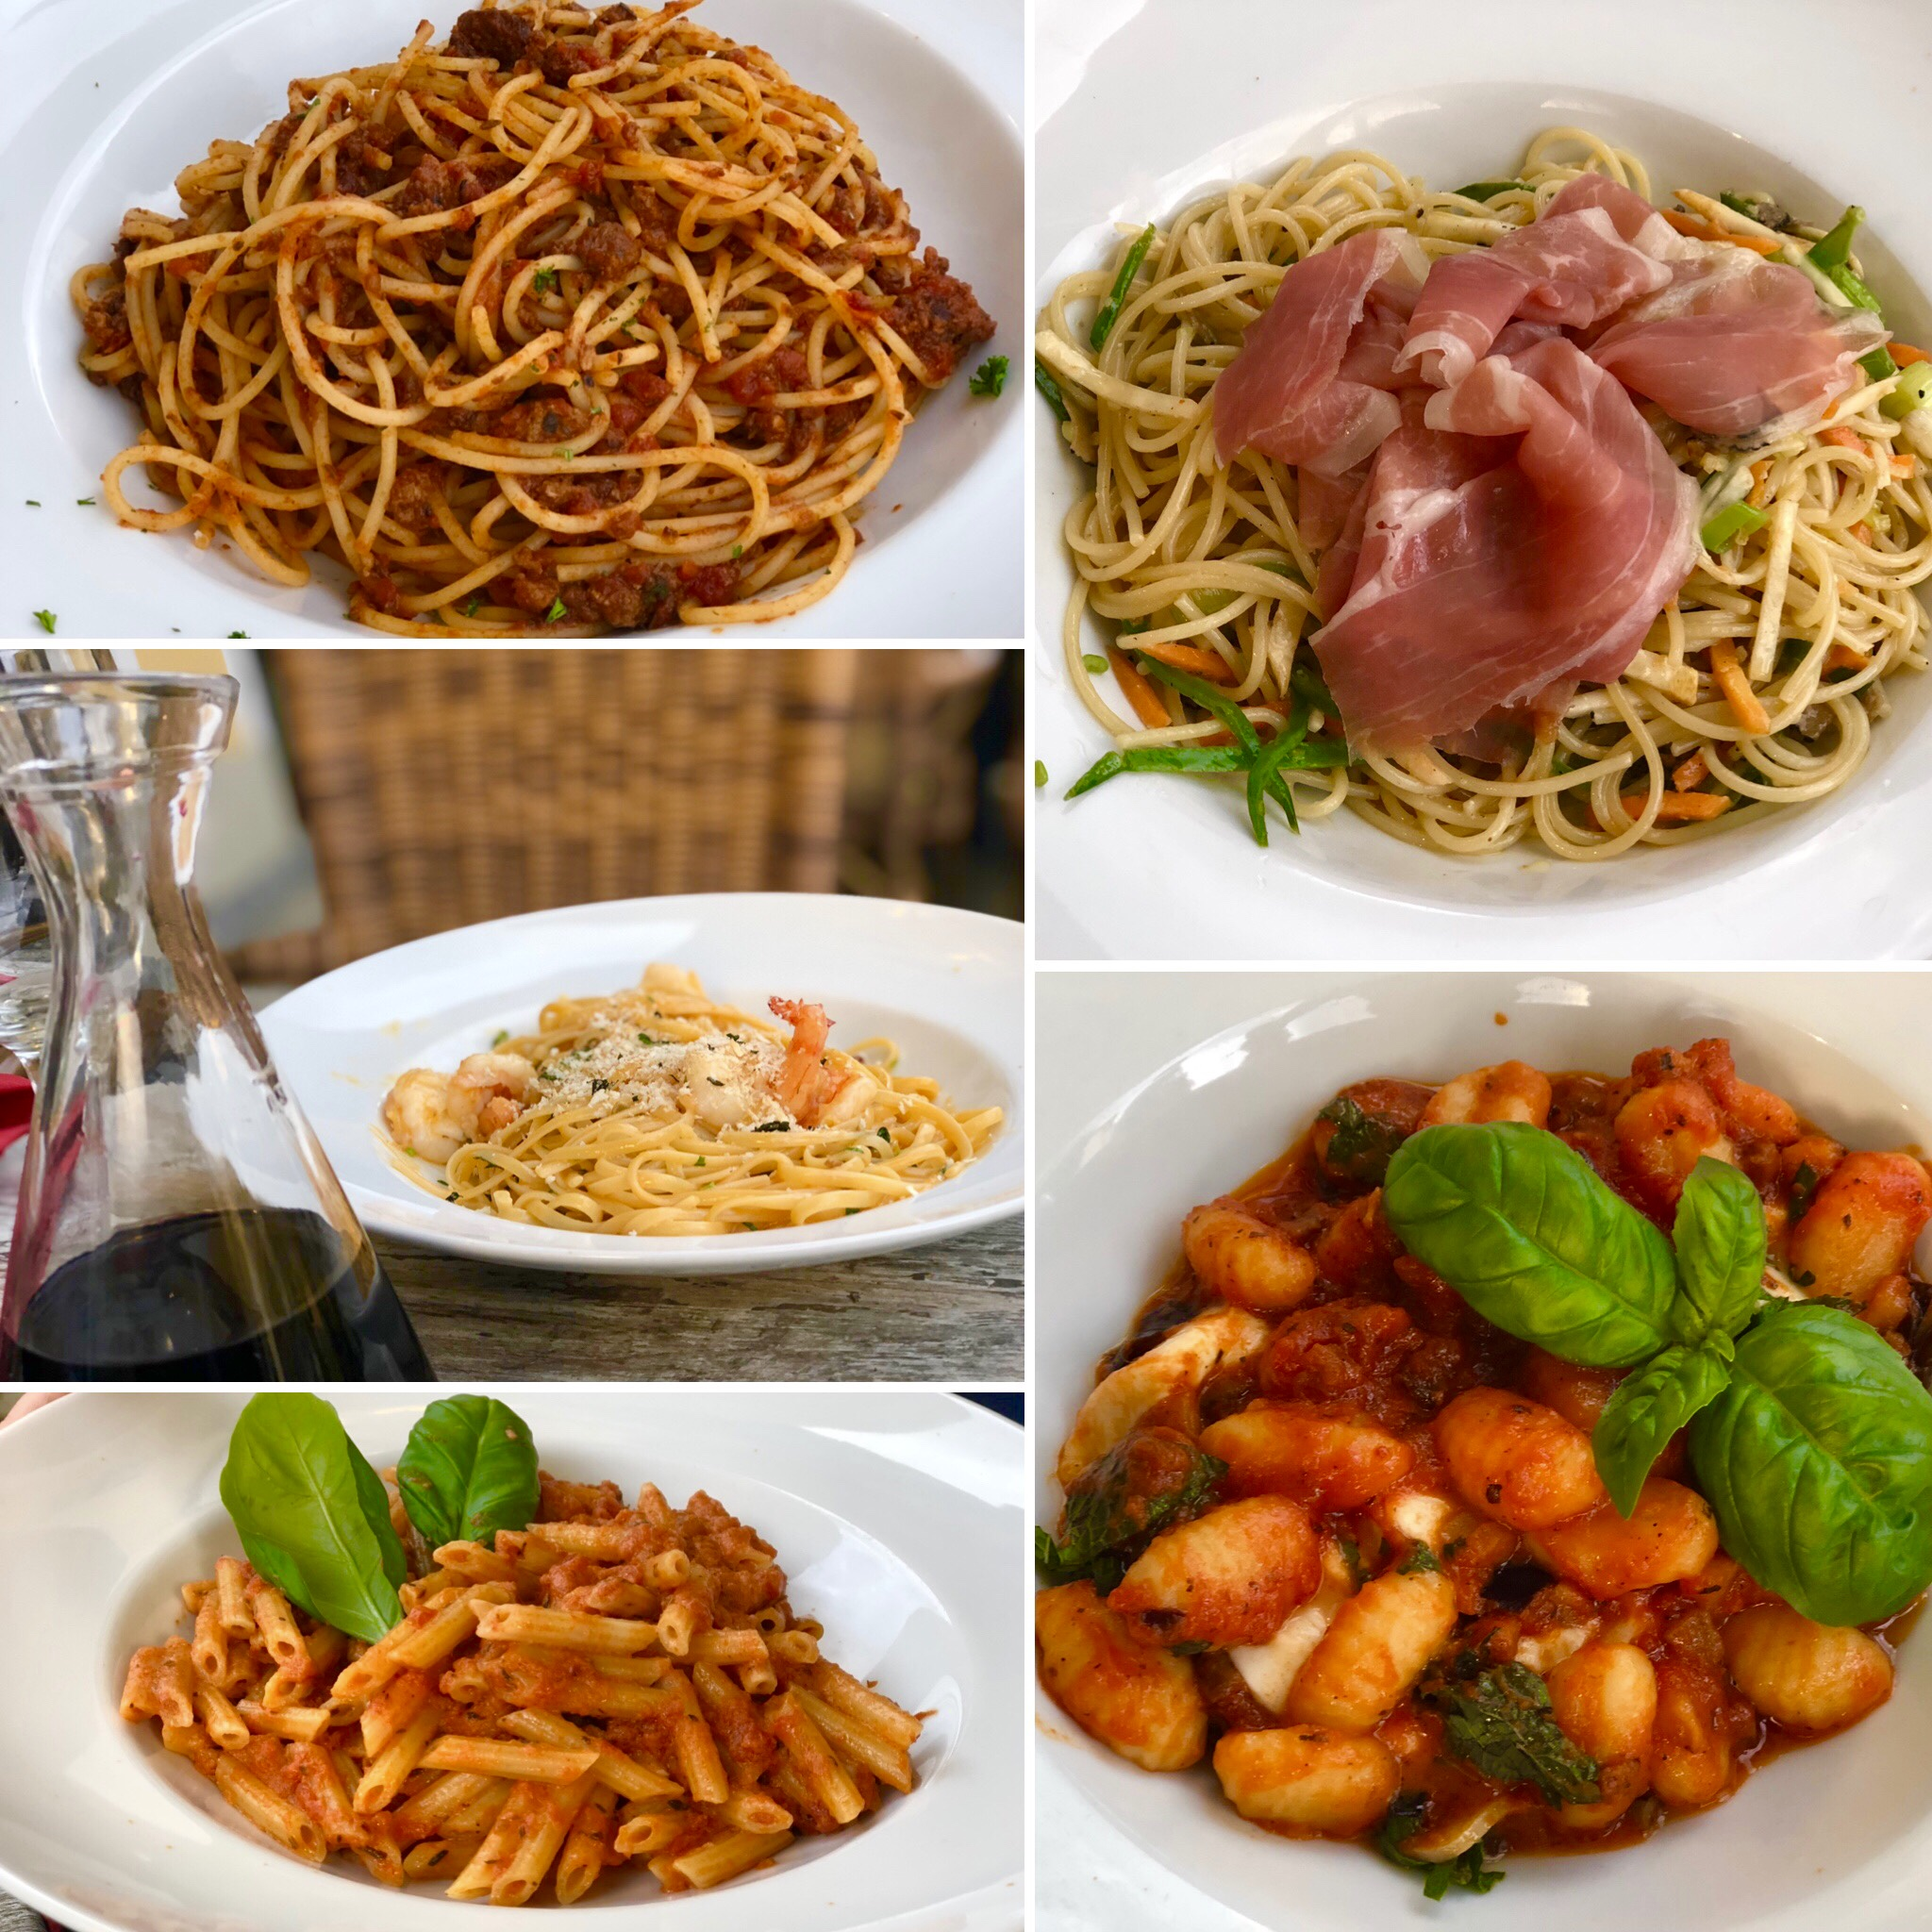 Various pasta dishes at la spelonca in garmisch germany